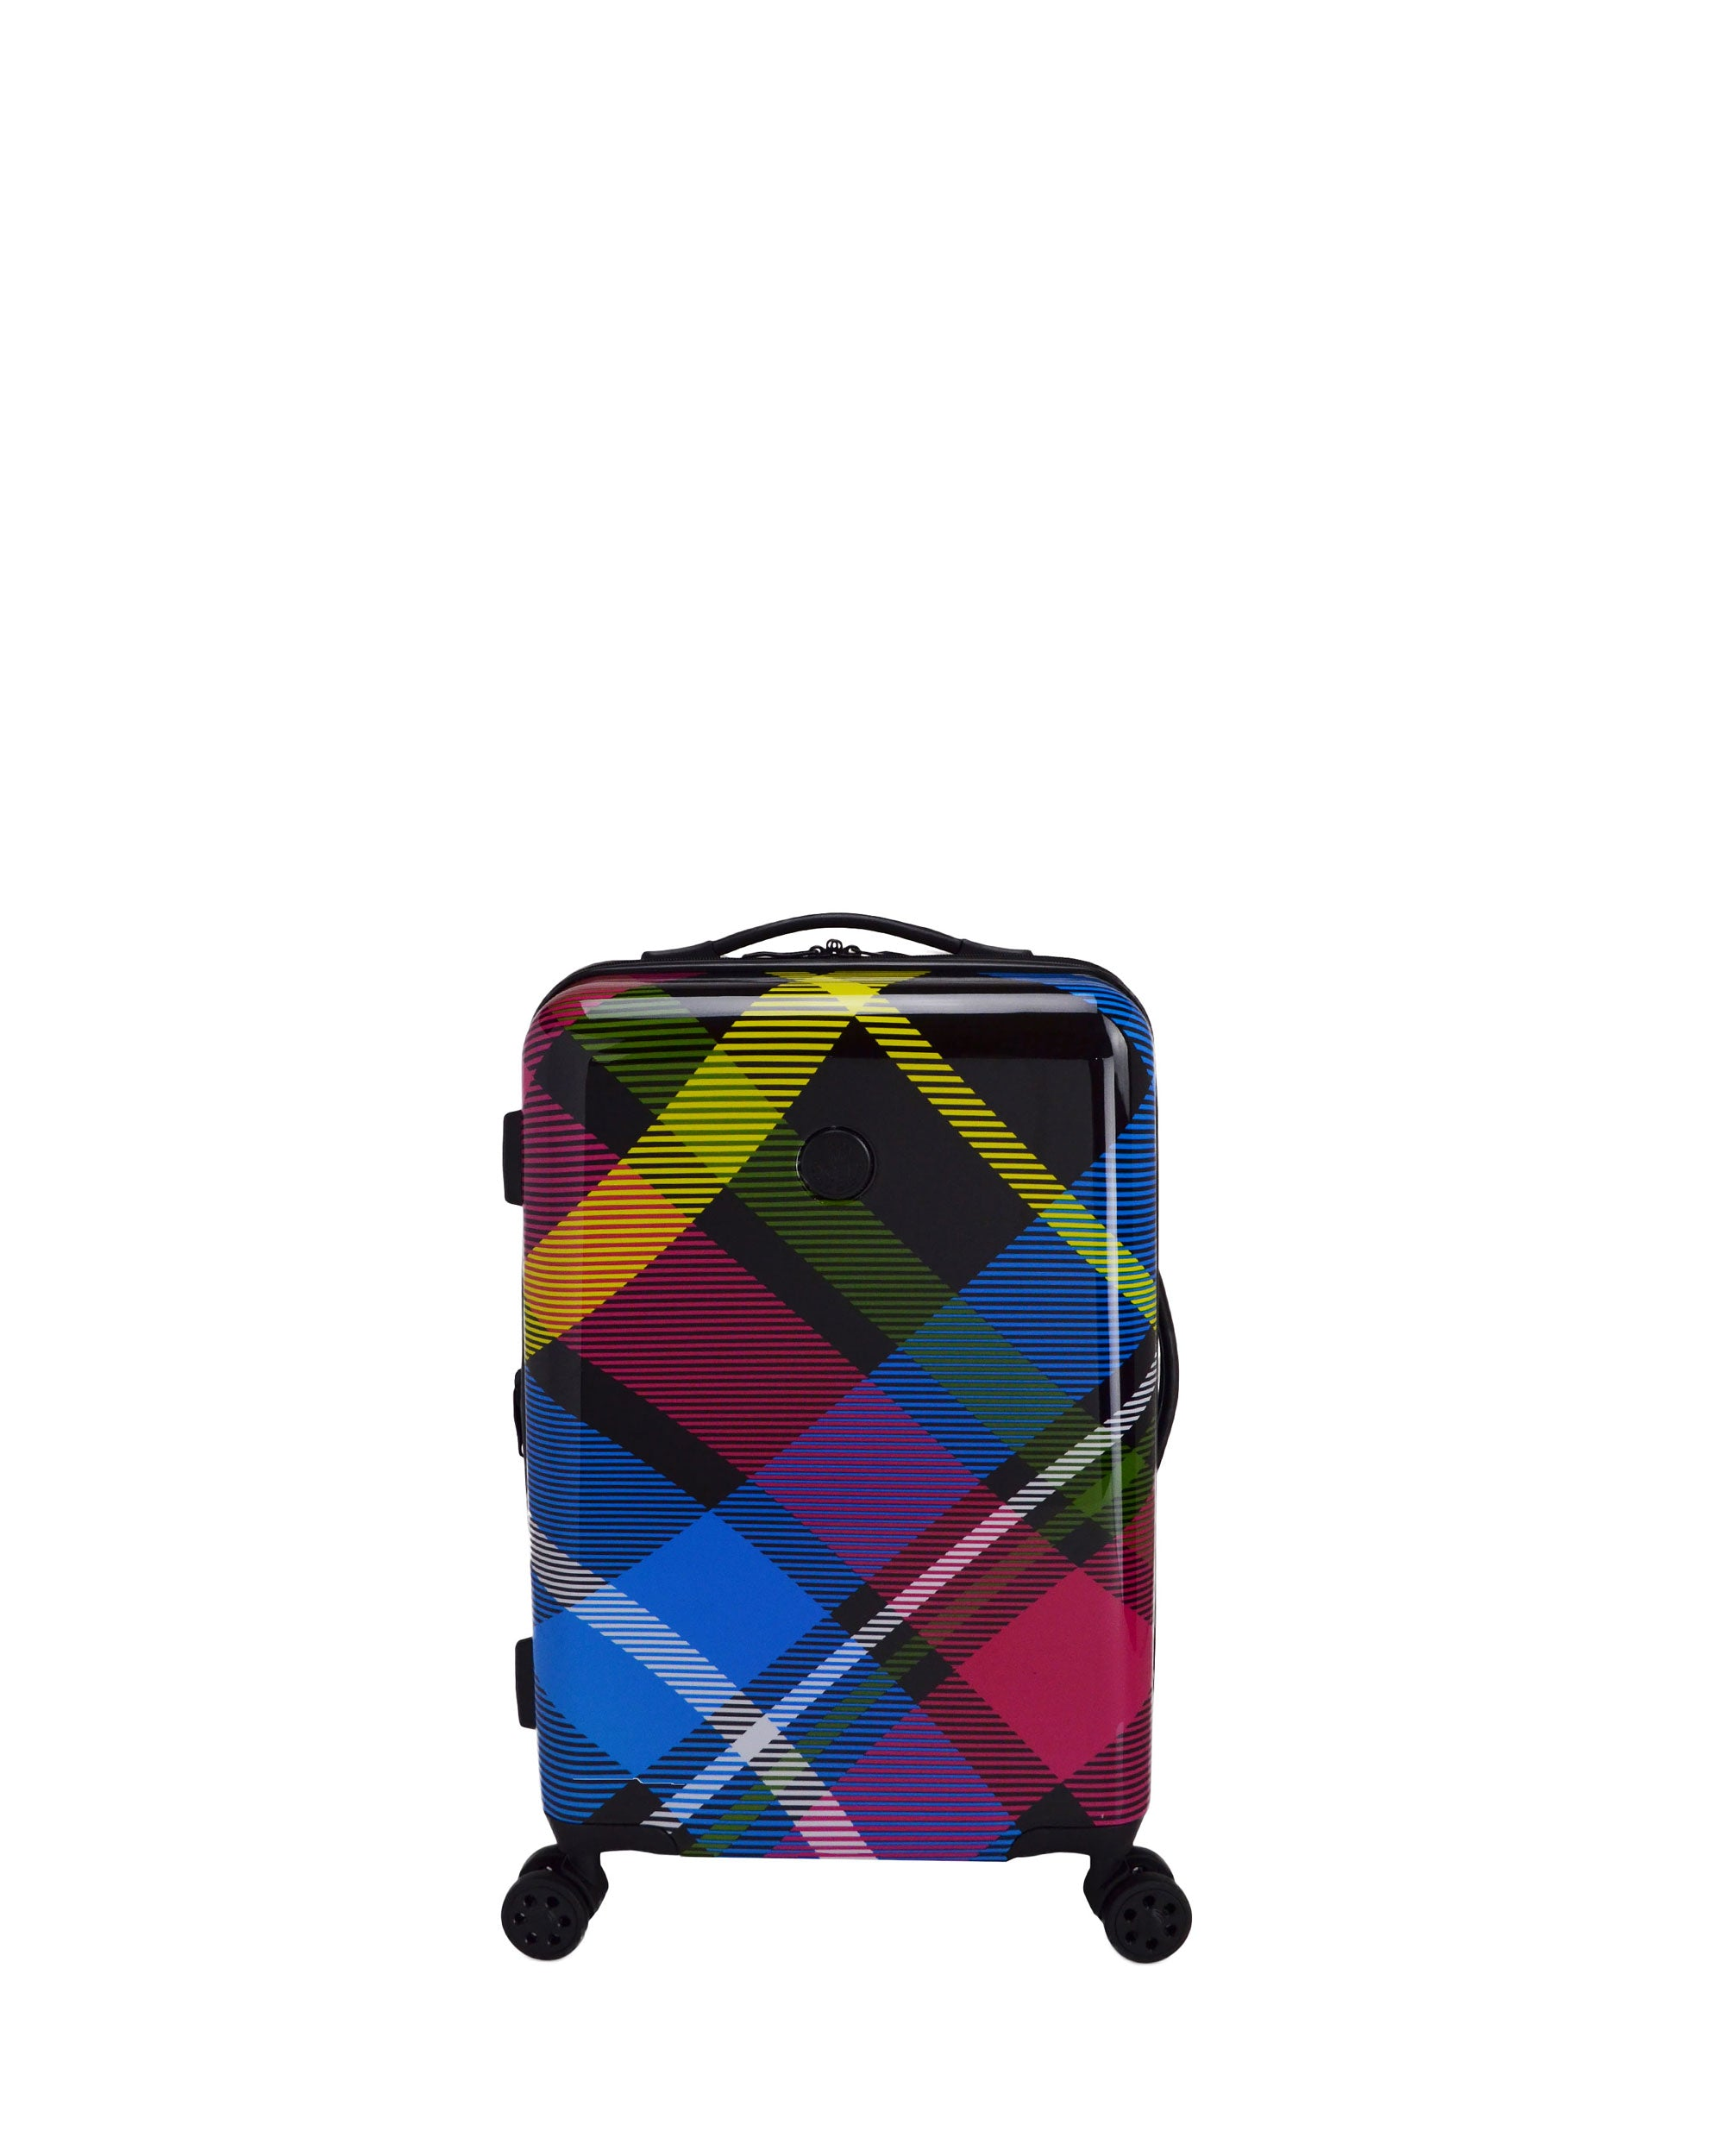 "Tartan 22"" 8-Wheel Hardside Spinner Luggage - Multi"